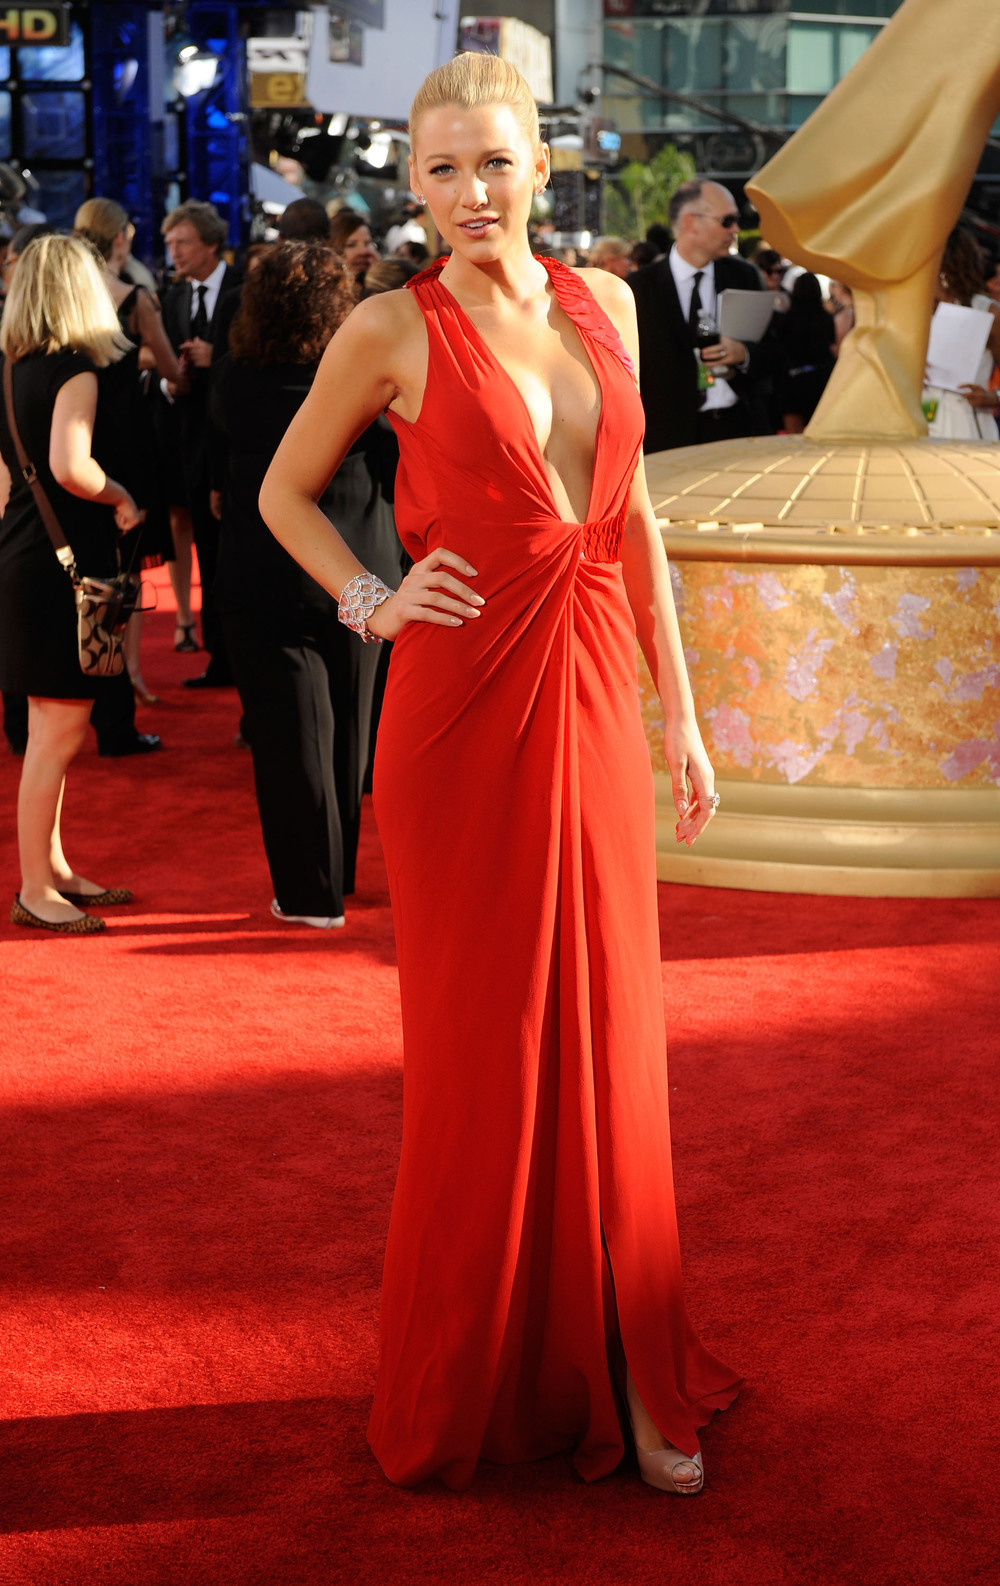 Red-Carpet-Photos-Blake-Lively-Red-Emmy-Awards-Red-Carpet.jpg